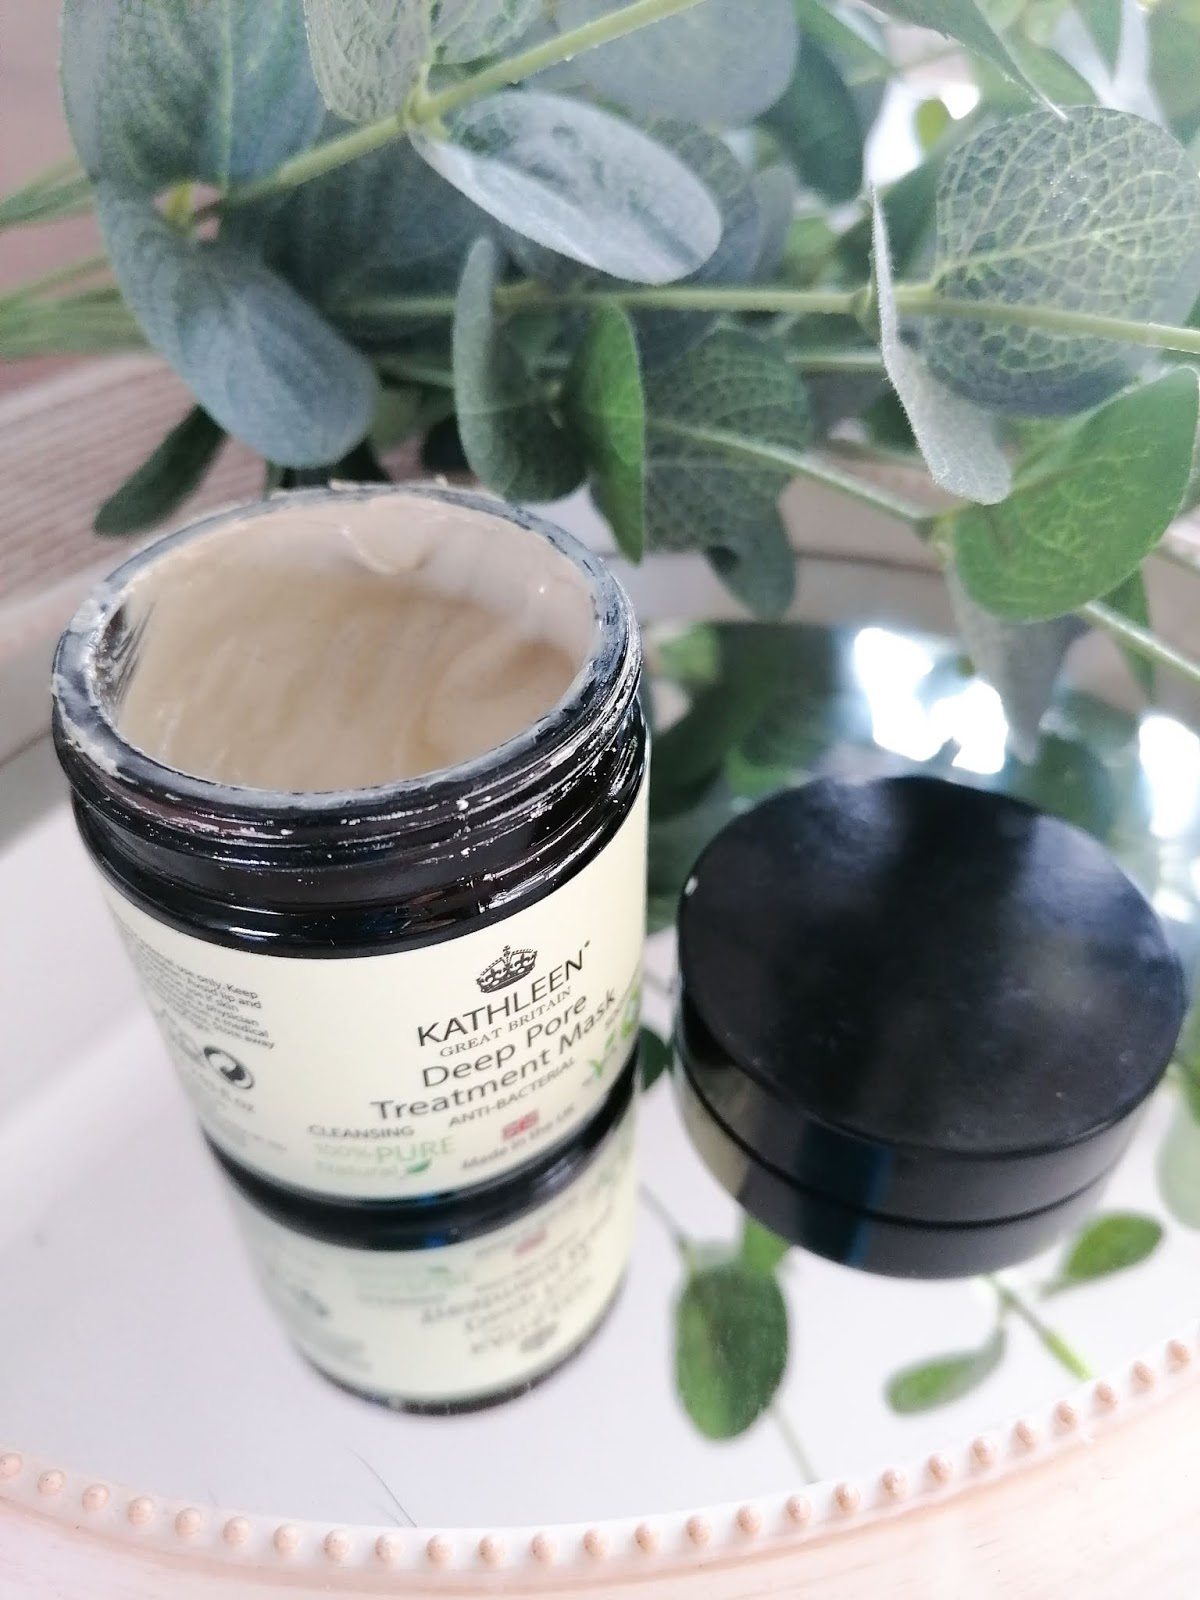 Kathleen deep pore cleansing mask